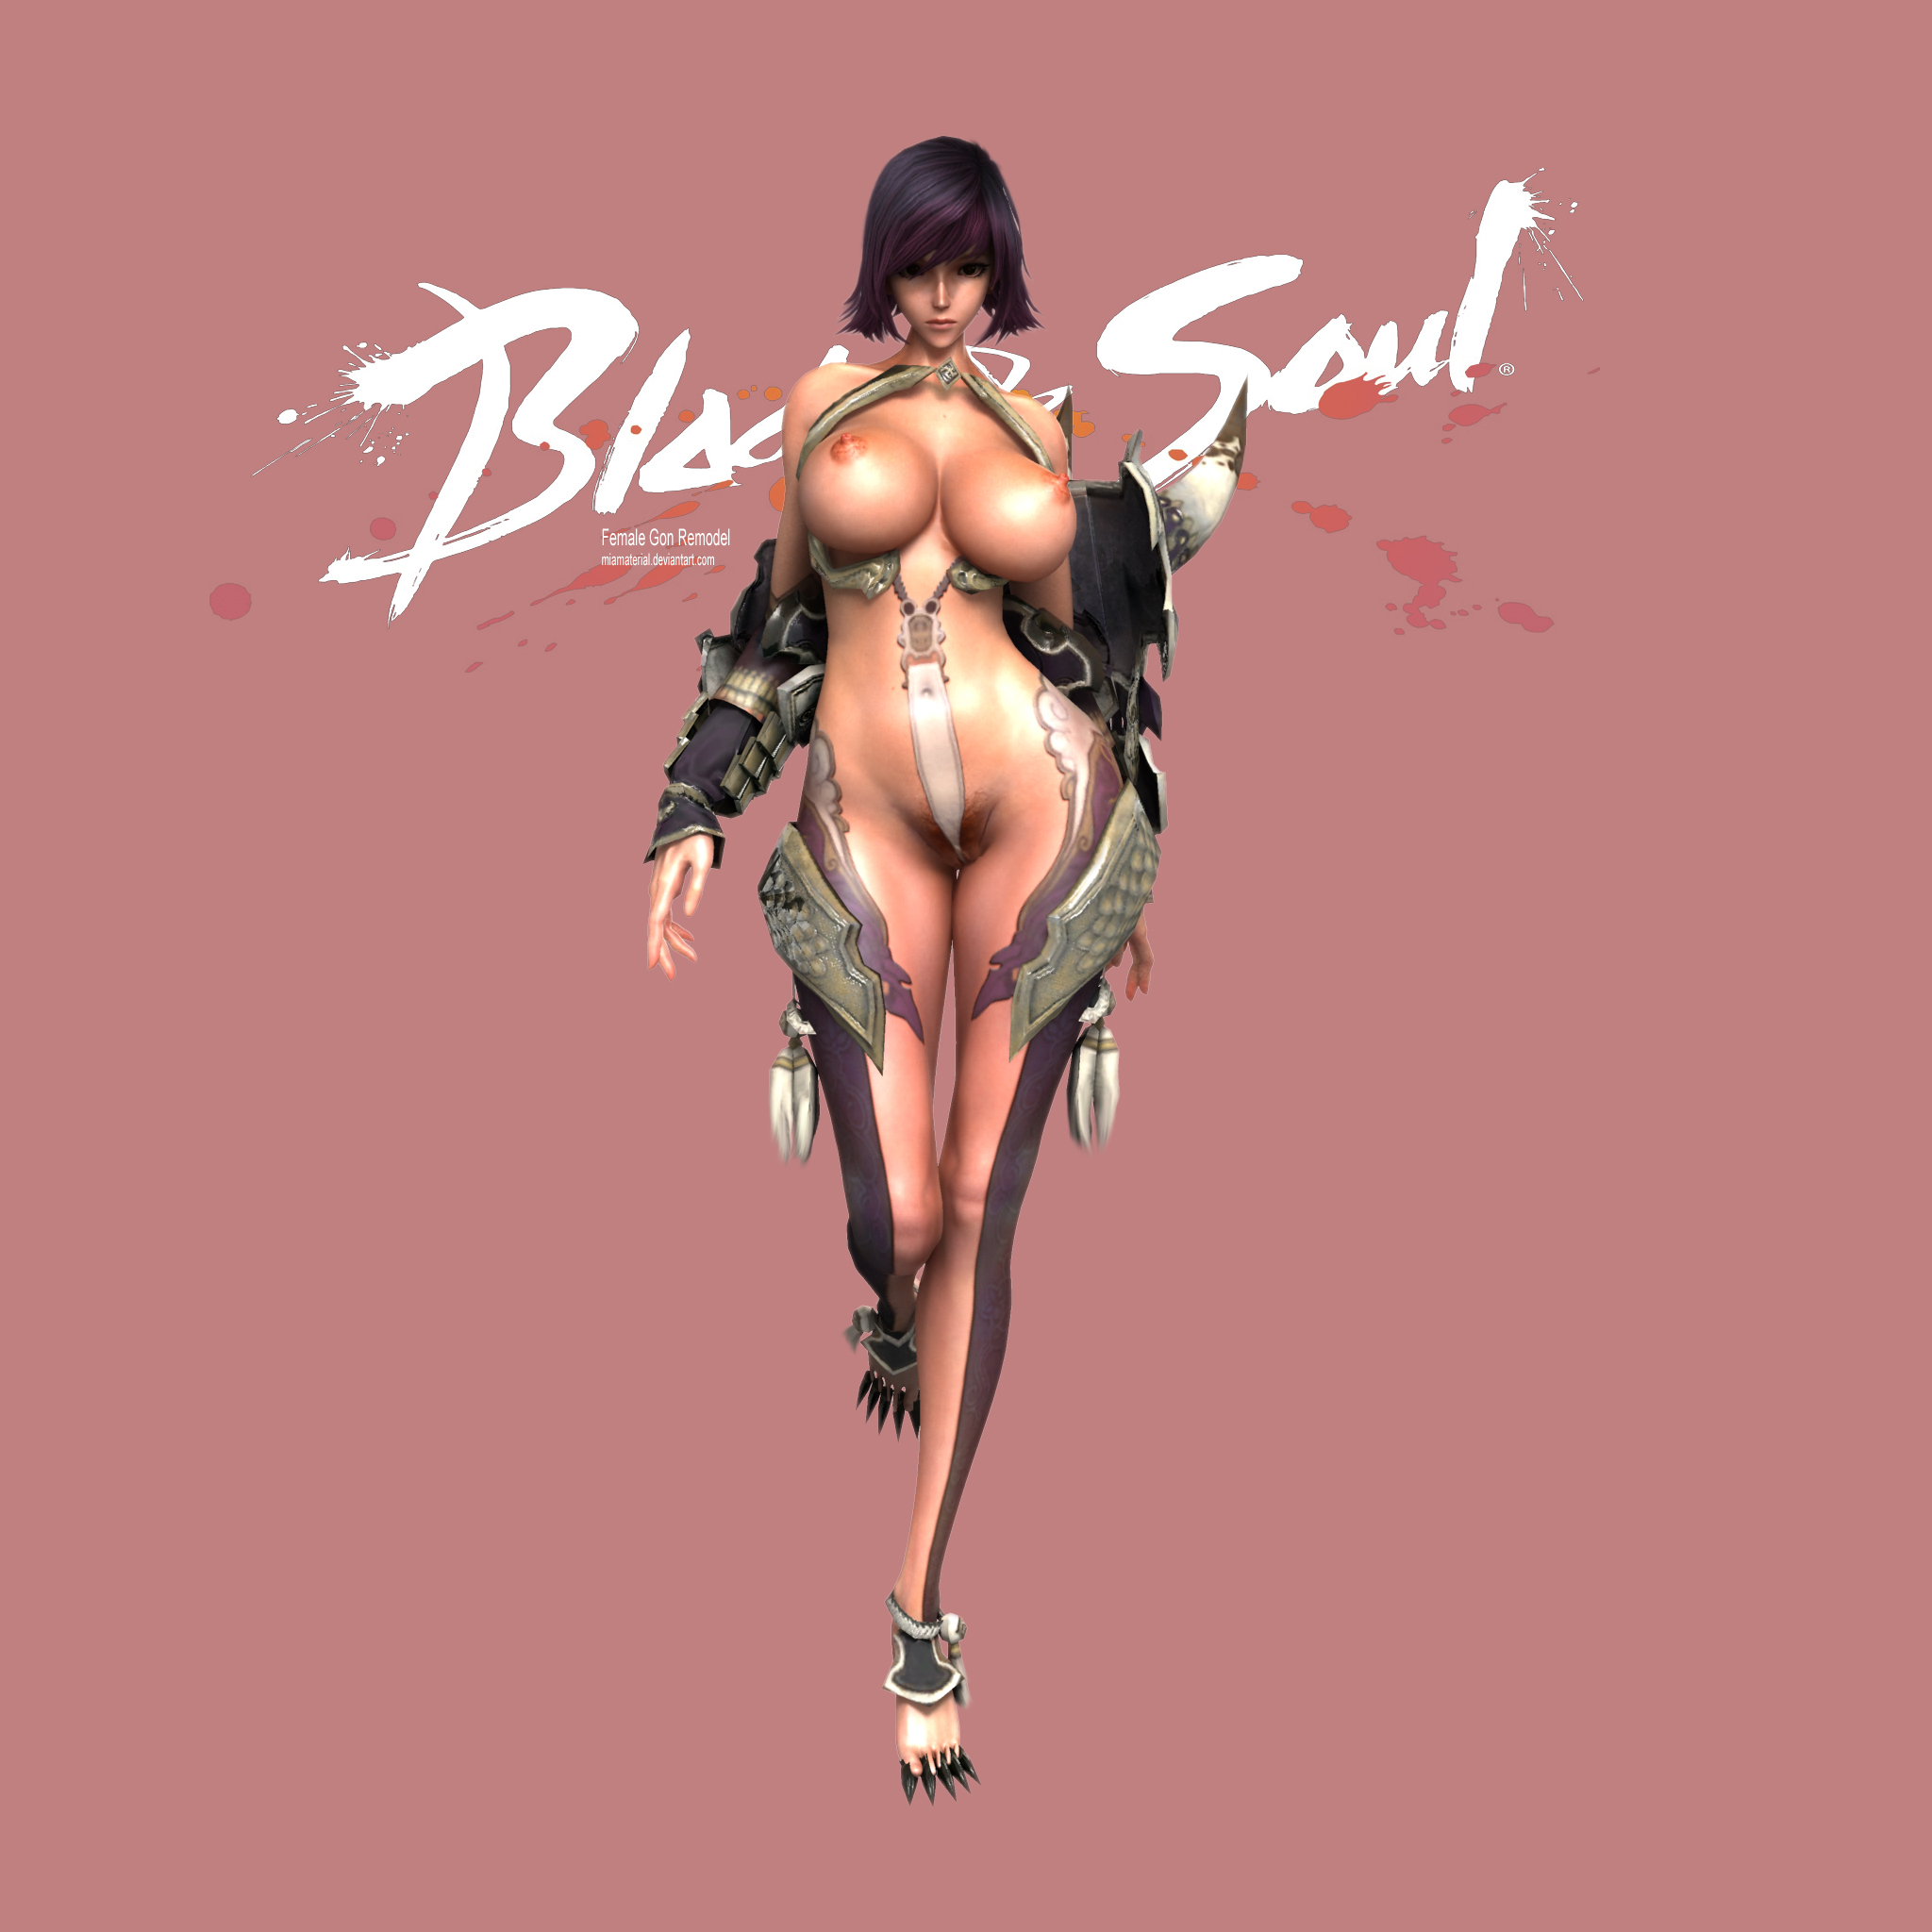 Blade and soul nude mod character creation 4